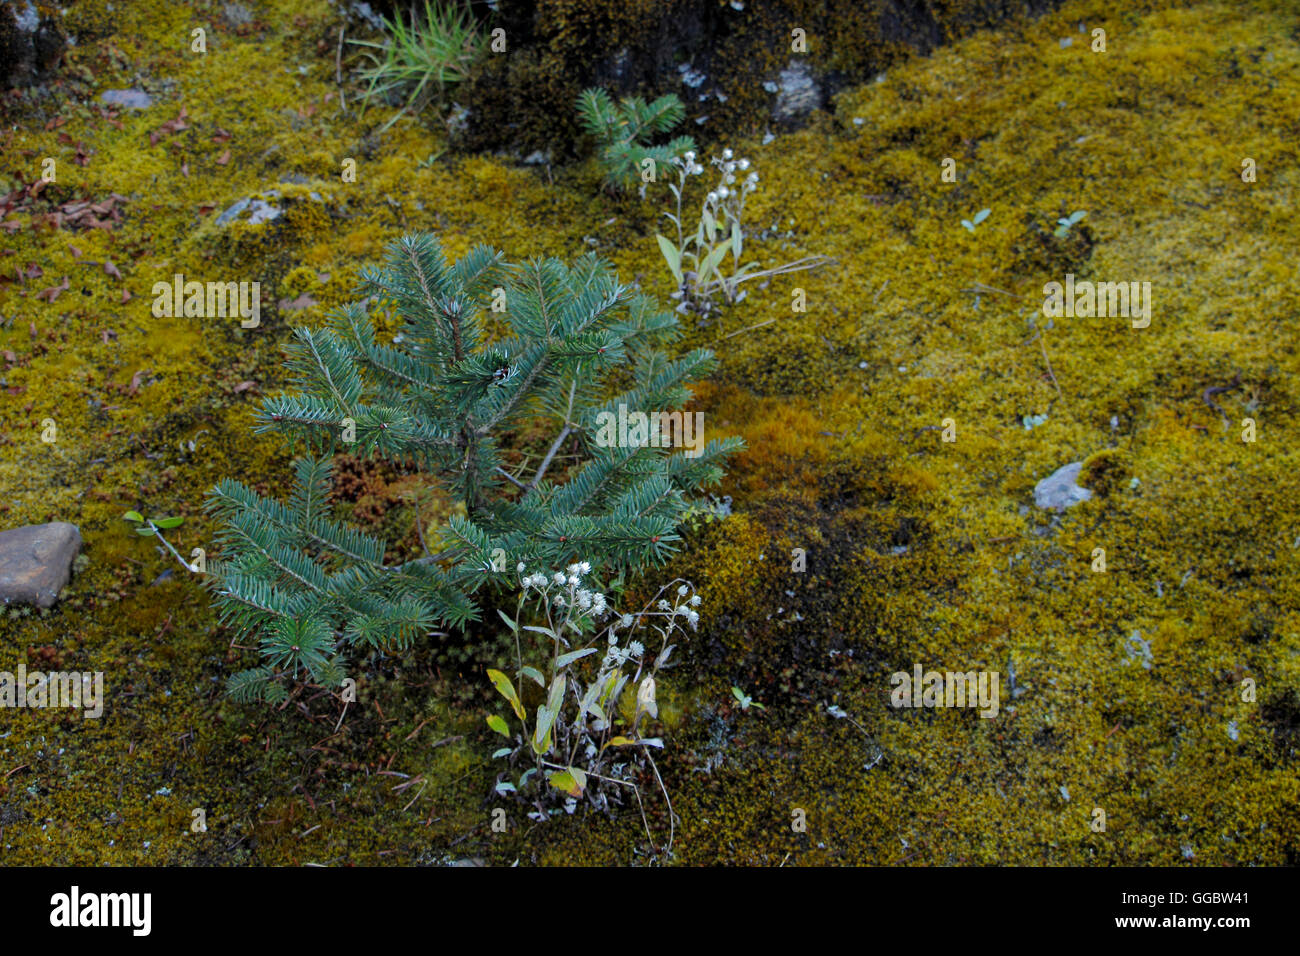 Moss and close-up view of a Tibetan conifer species growing in the Himalayas - Stock Image